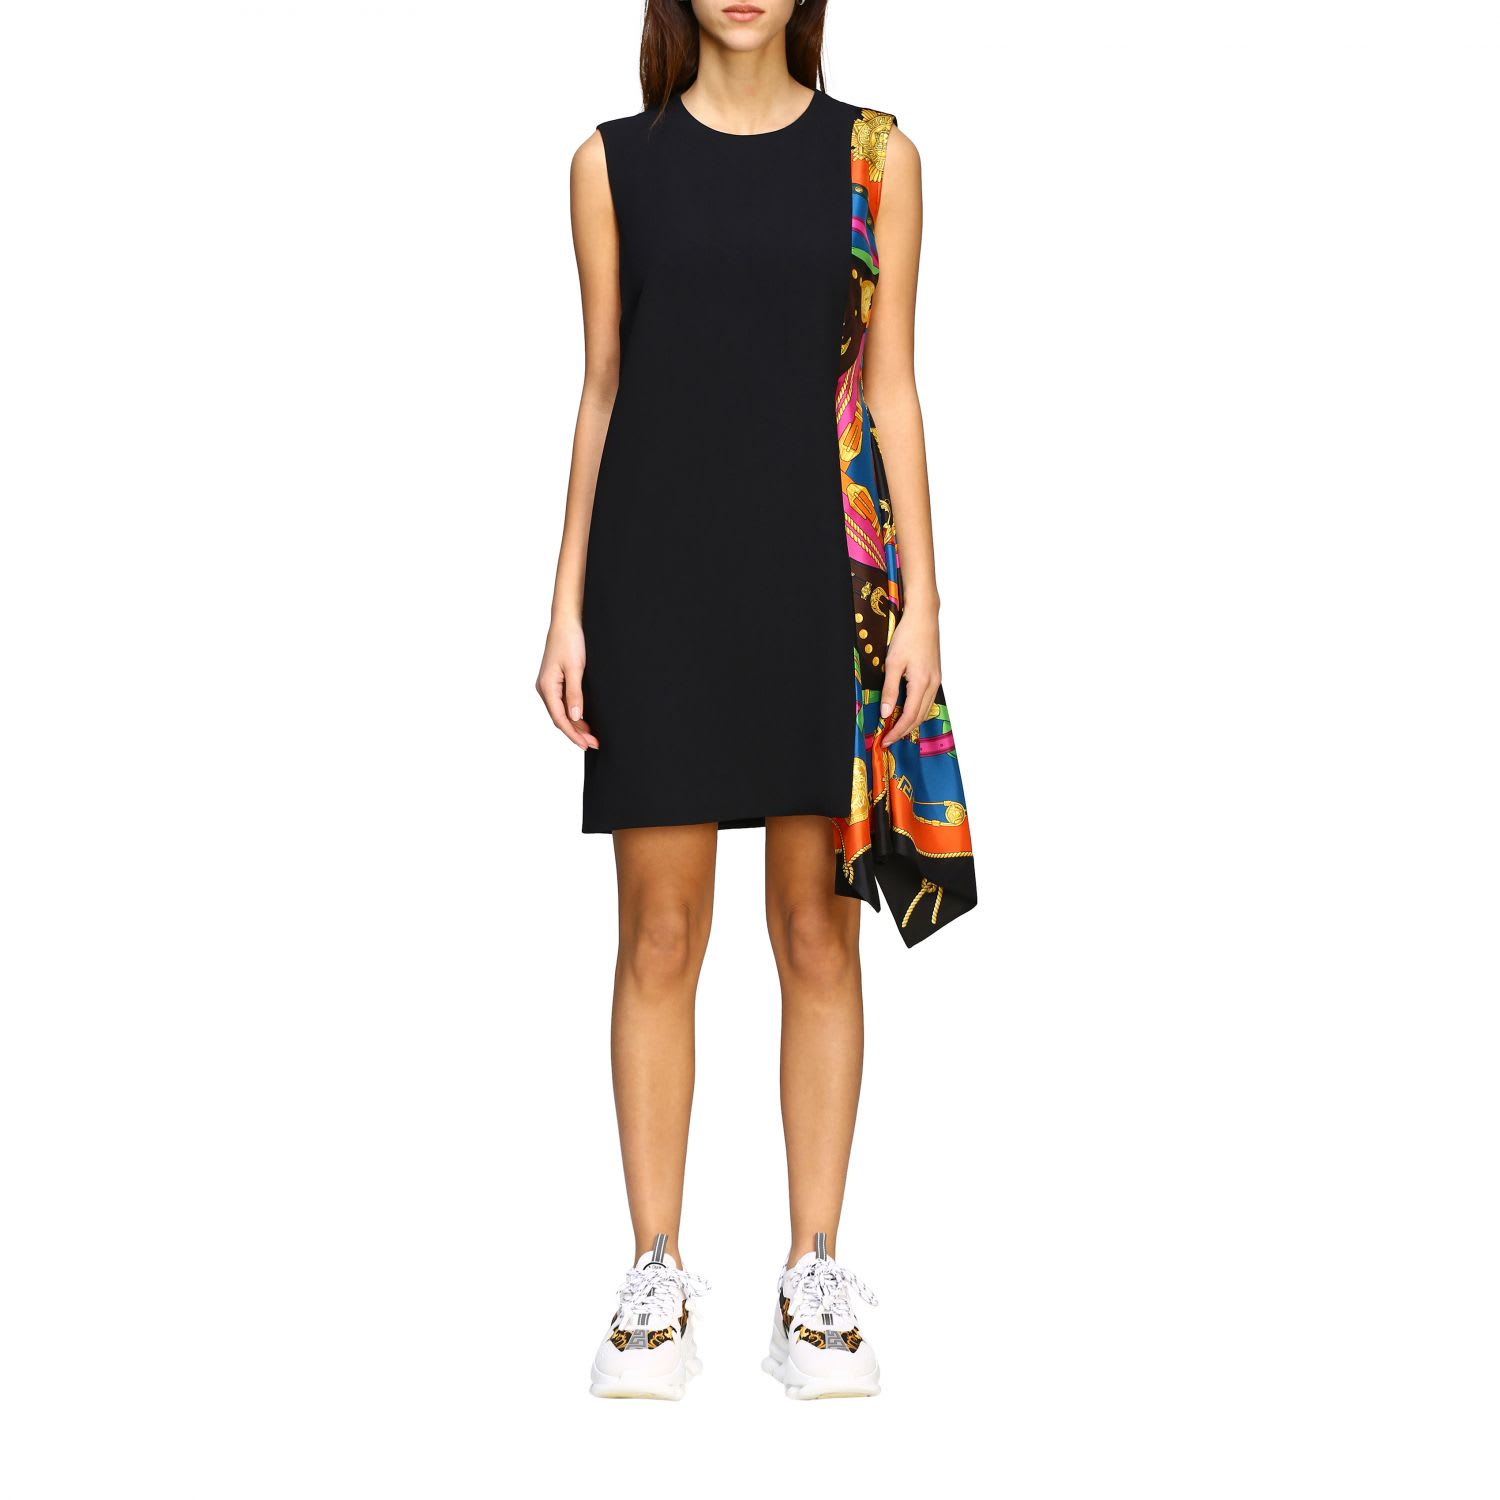 Buy Versace Dress Versace Dress With Silk Insert With Rodeo Print online, shop Versace with free shipping